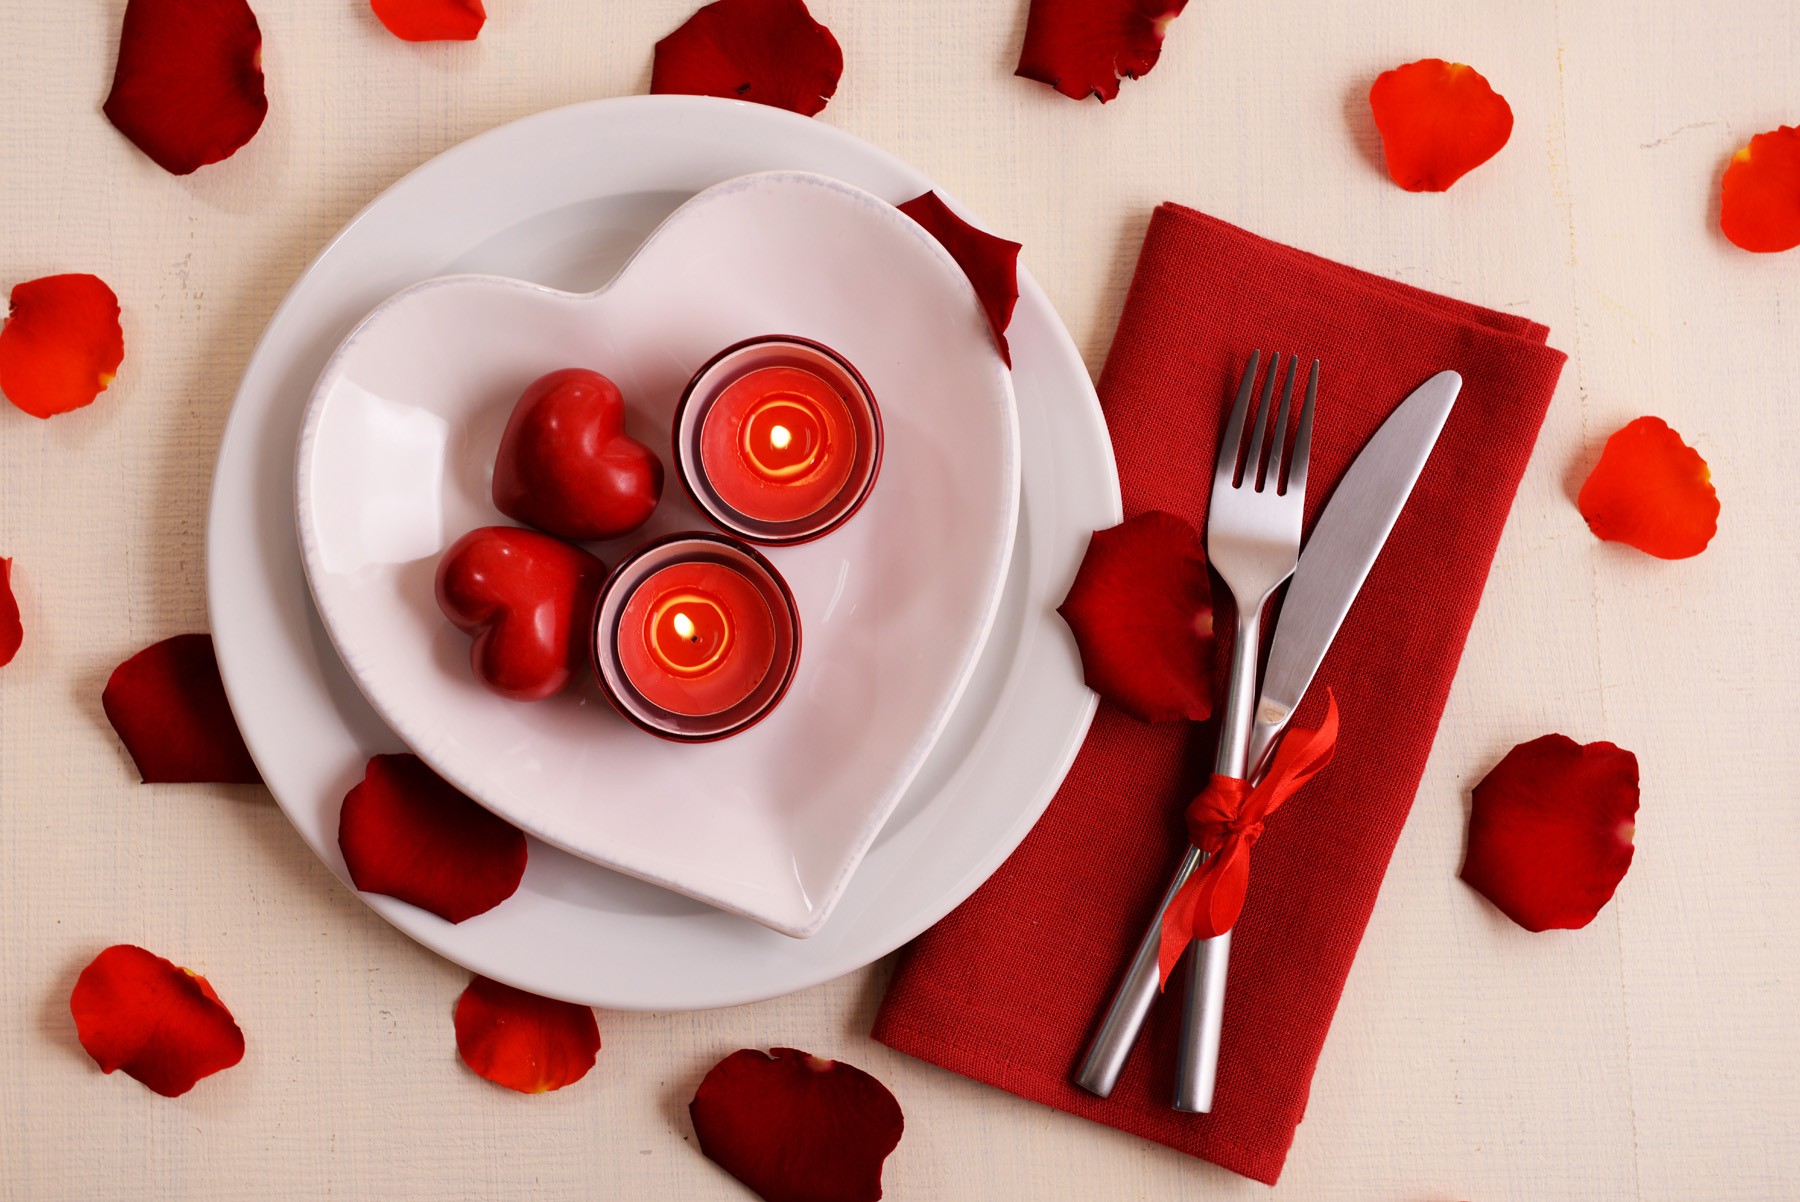 Candles and petals cutlery 51507